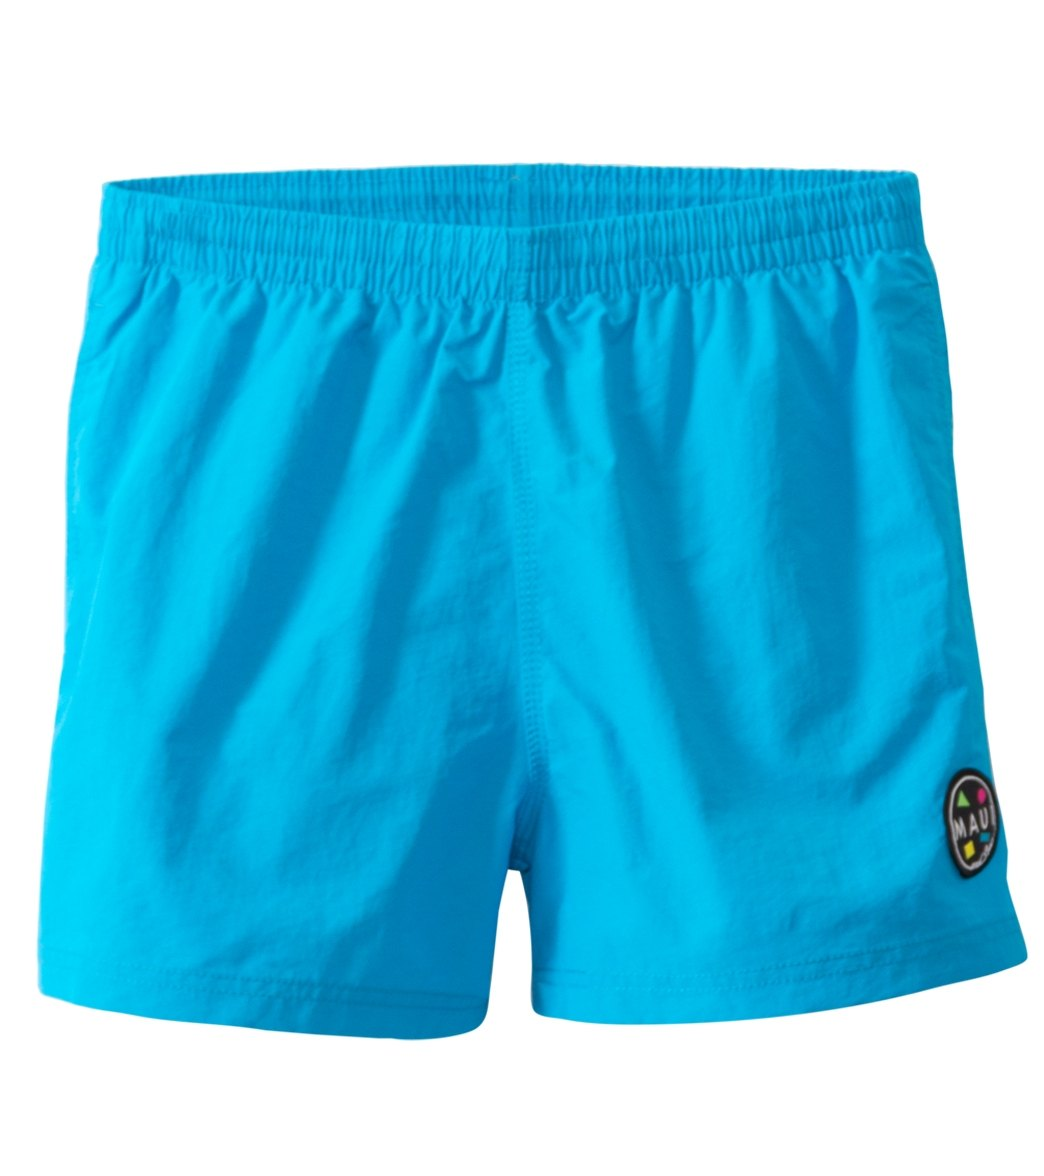 5f4b190a9a Maui and Sons Men's Party Rocker Boardshort at SwimOutlet.com ...